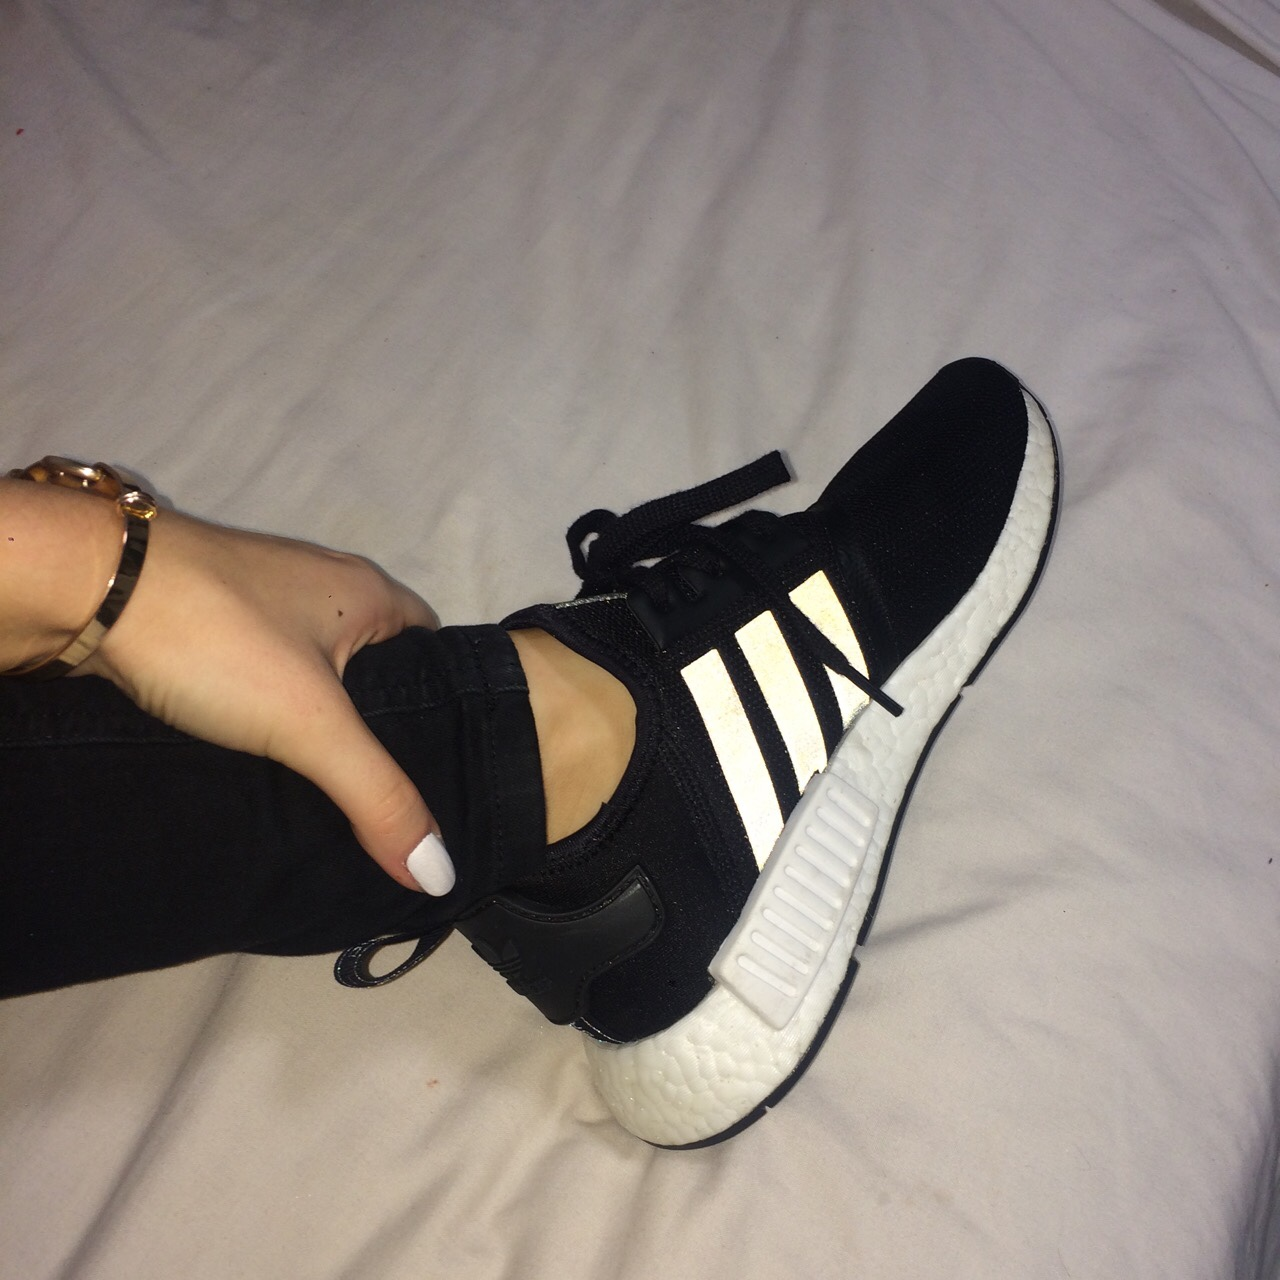 nmd r1 womens black and white